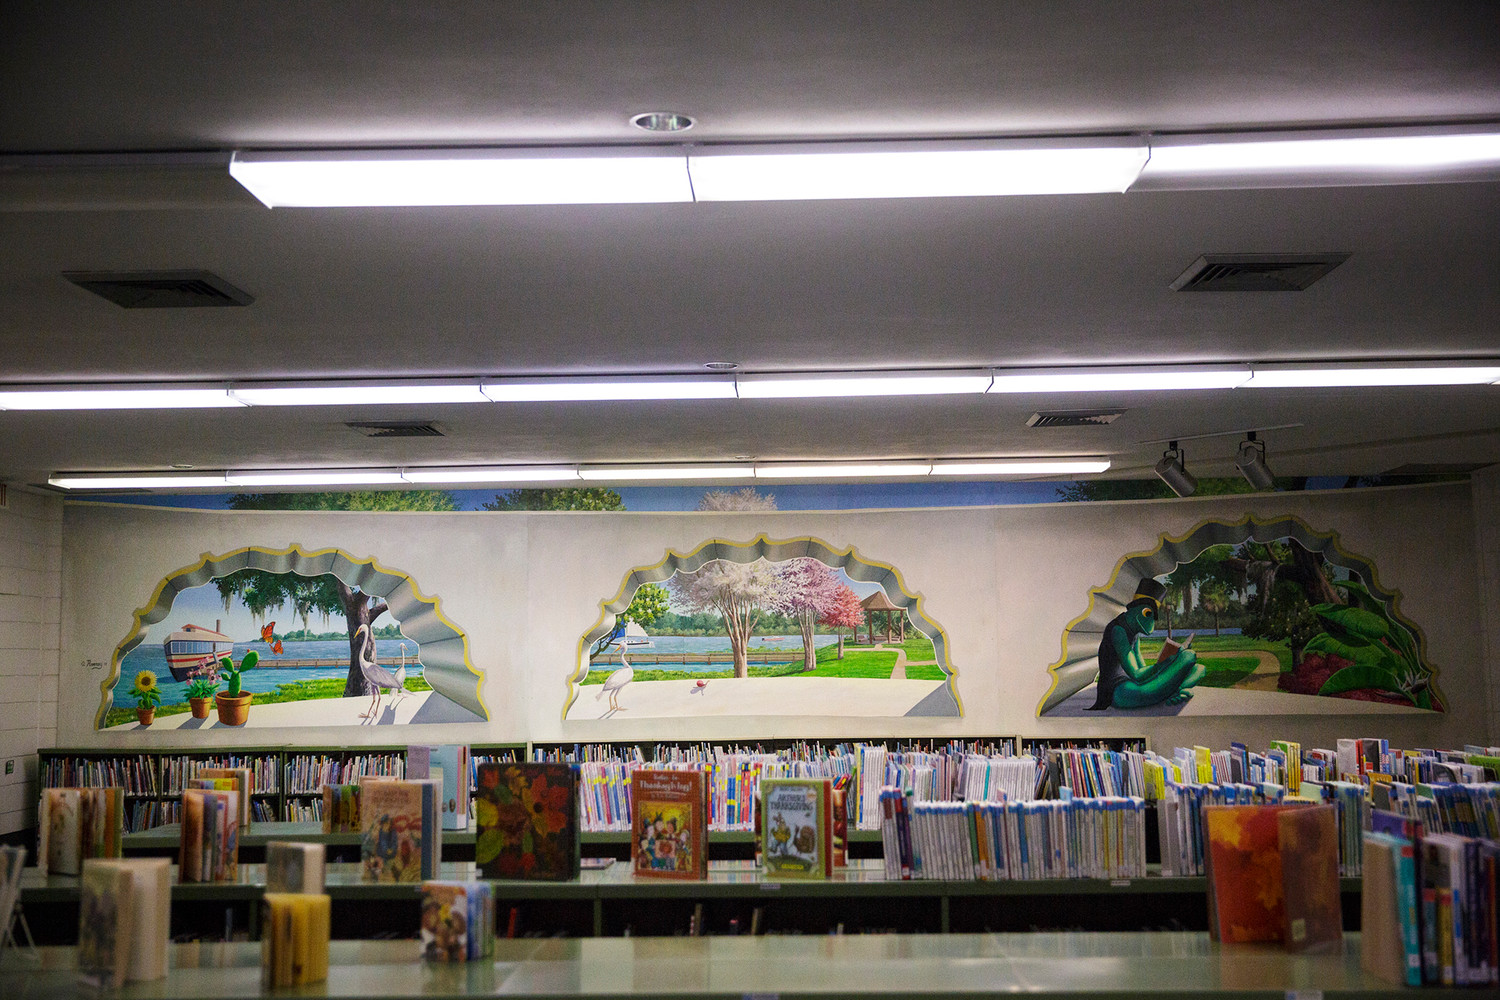 Anthony Rooney's first mural sits in the Green Cove Springs Library's children's section. Rooney returned to the library Wednesday morning to install part of the second phase of the mural project.